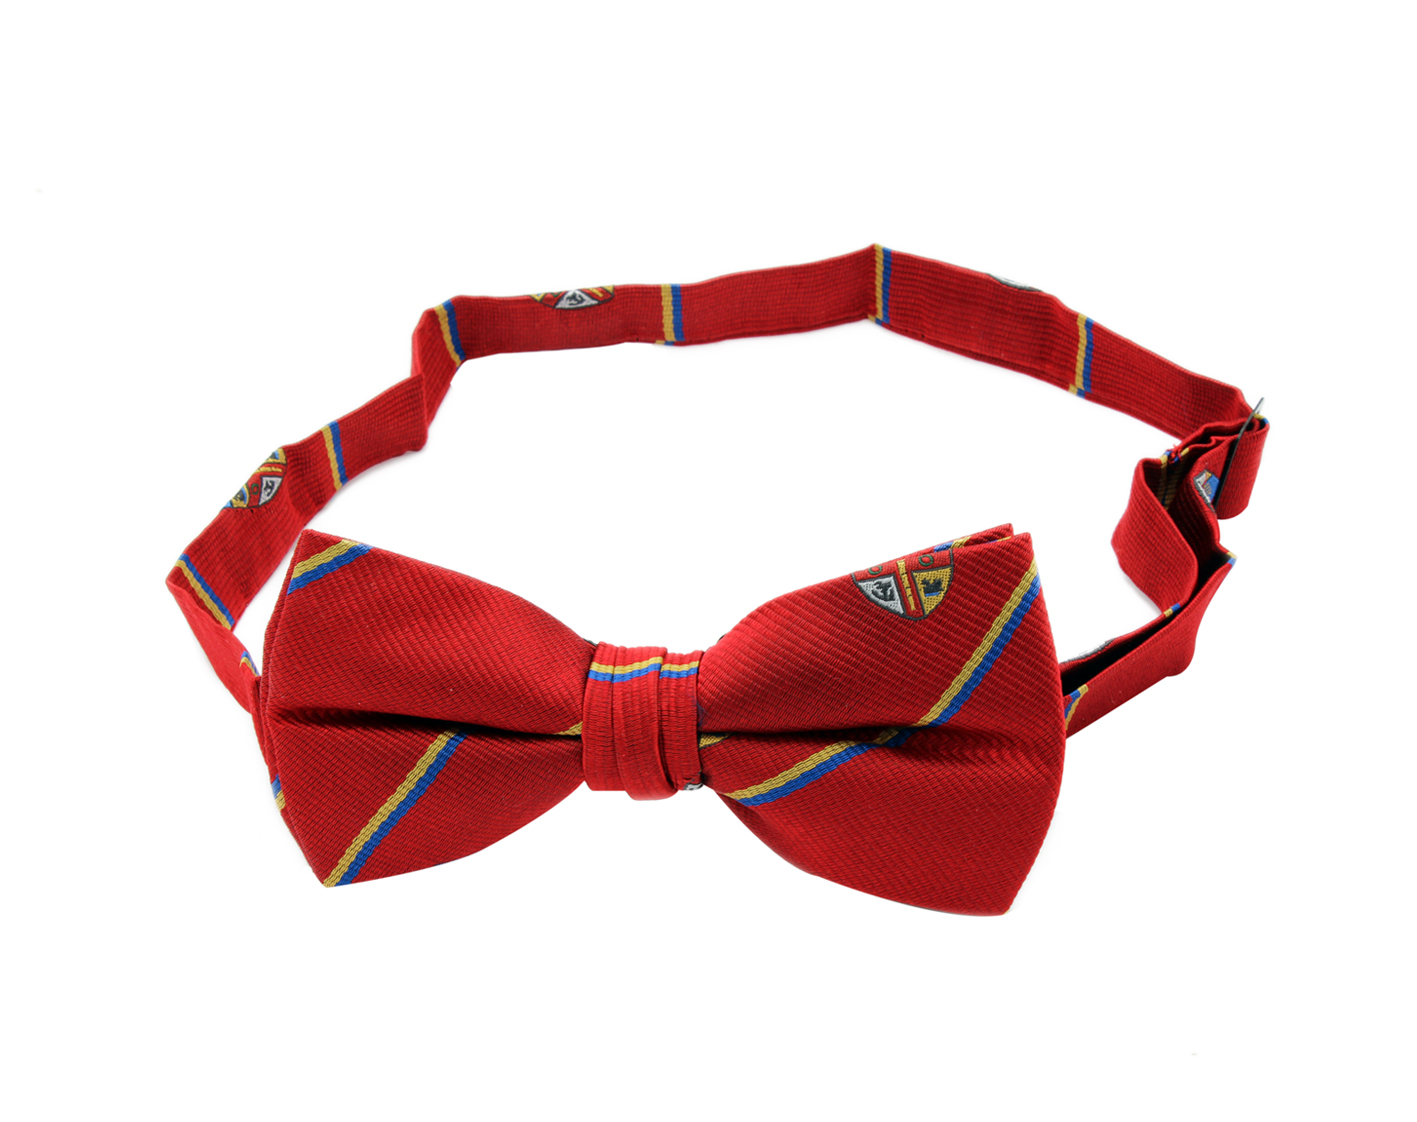 The Tie Rack Boutique Australia Online provides high quality Bow Ties, Neck Ties, Skinny Ties, Wedding ties, Pocket Squares, Scarfs and more at competitive prices. Shop our large collection of mens Ties online. Free Shipping Australia Wide.